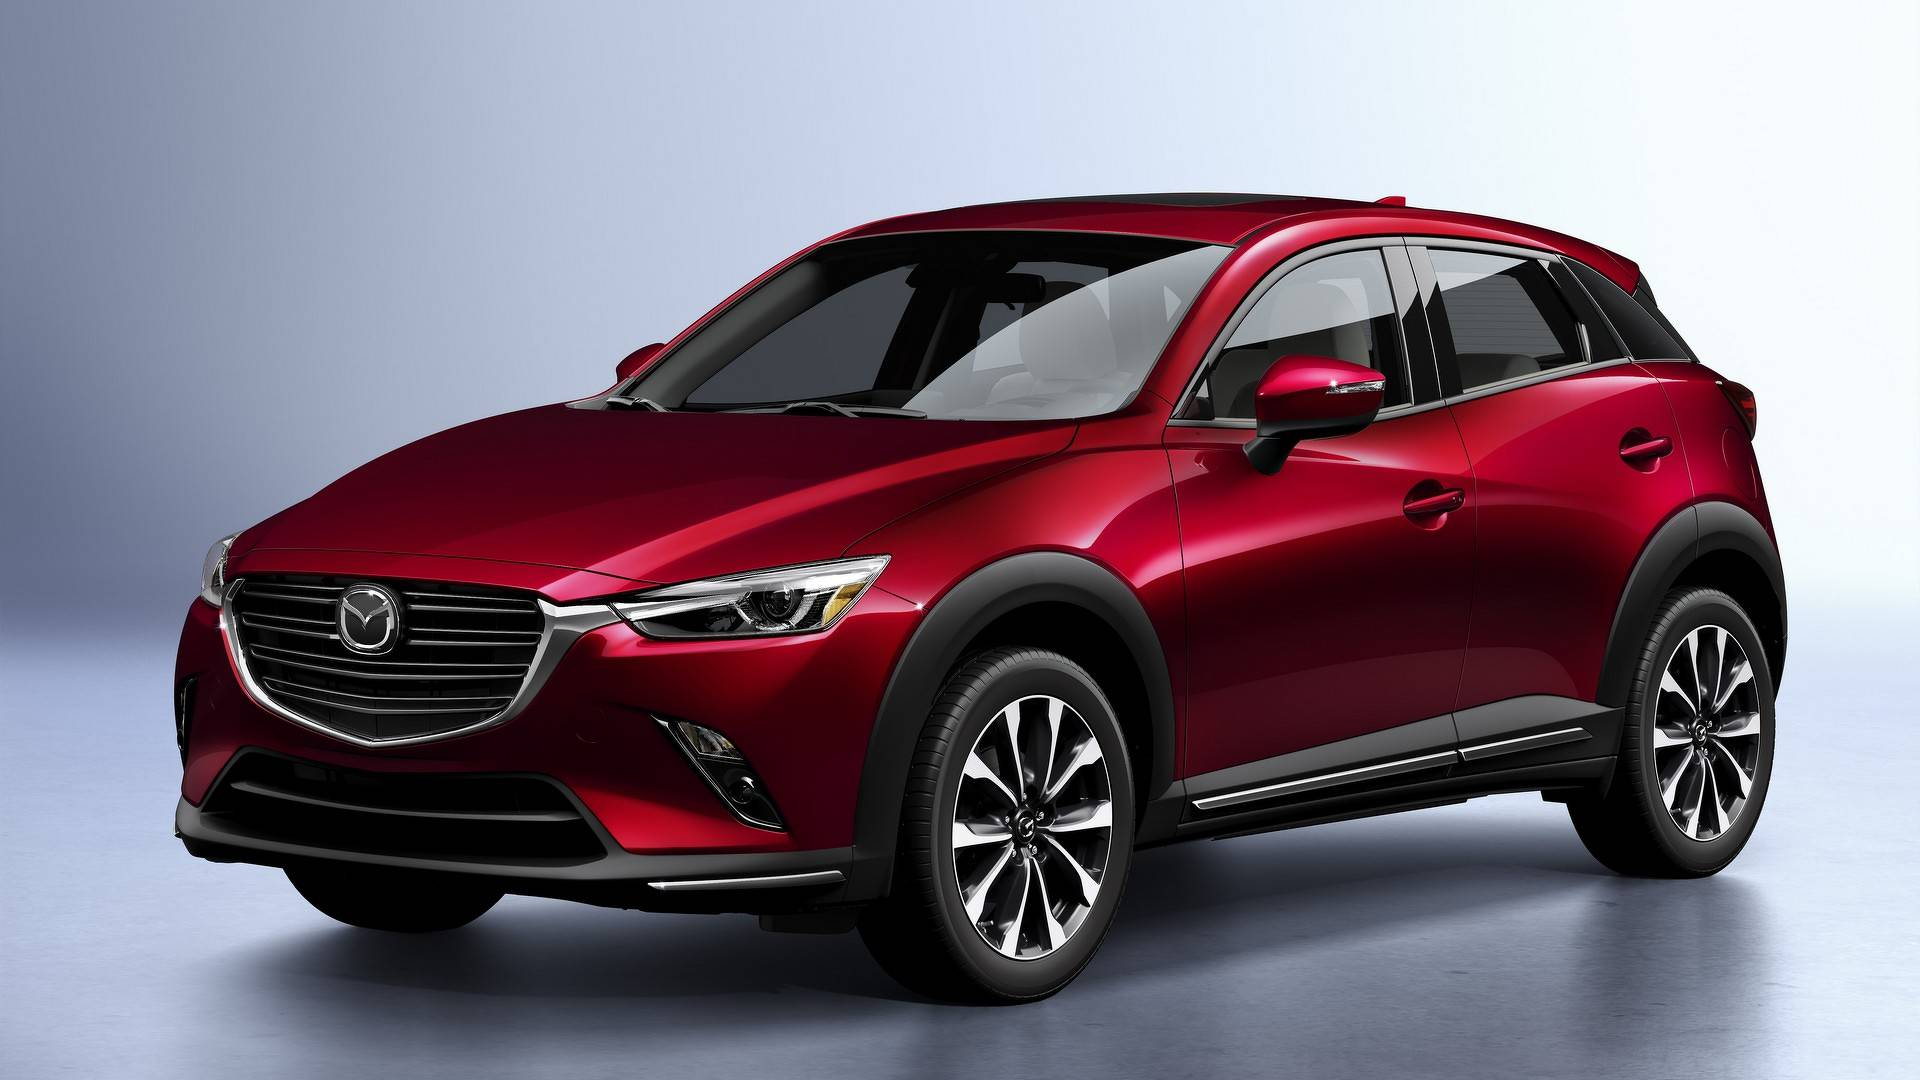 2020 Mazda Cx 3 Ditches All But One Trim To Make Room For Cx 30